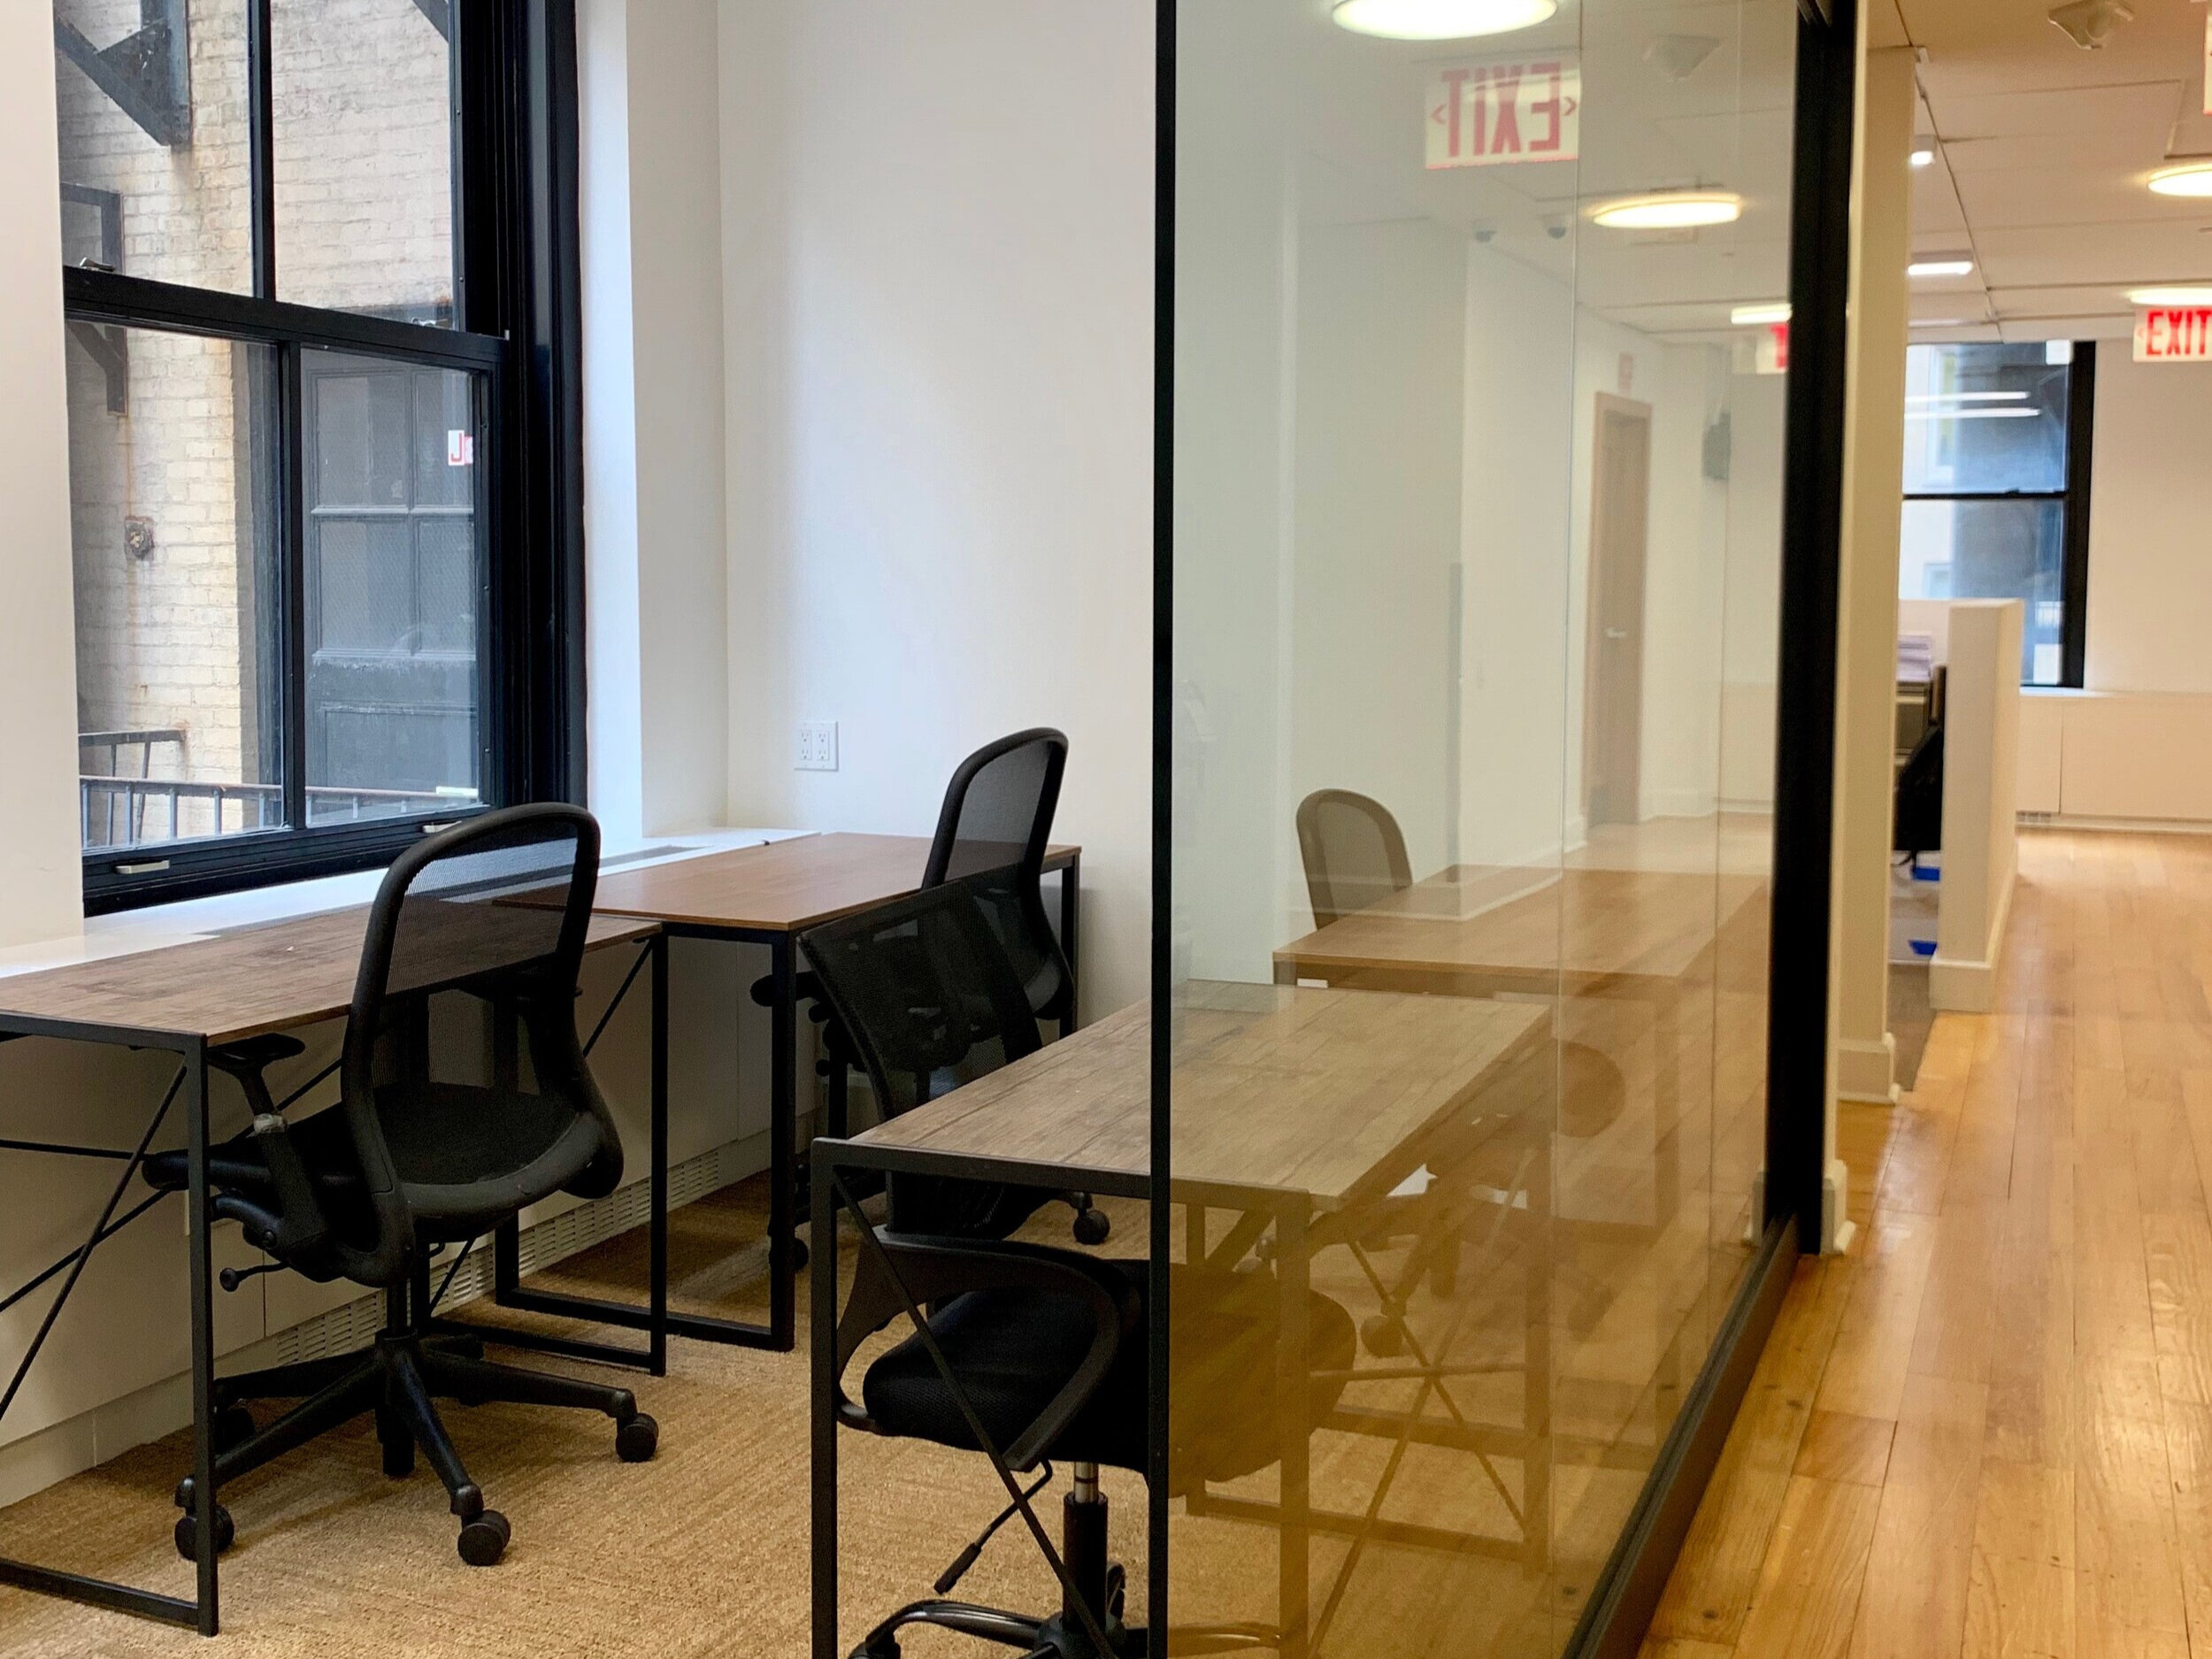 4 Person Office - A quiet office perfect for a company that needs natural light to boost productivity.